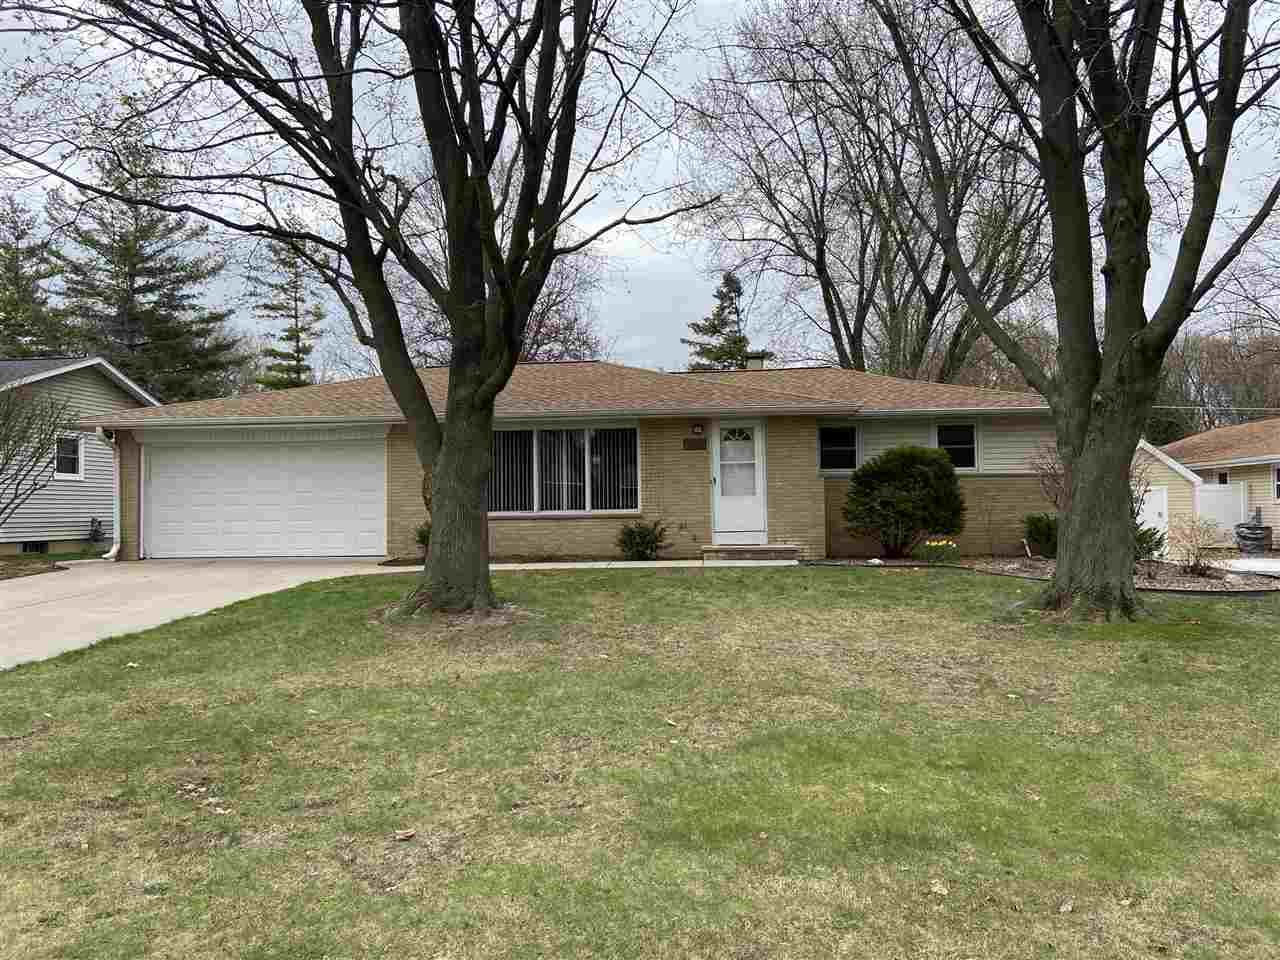 2181 RED OAK Drive, Green Bay, WI 54304 - MLS#: 50238628